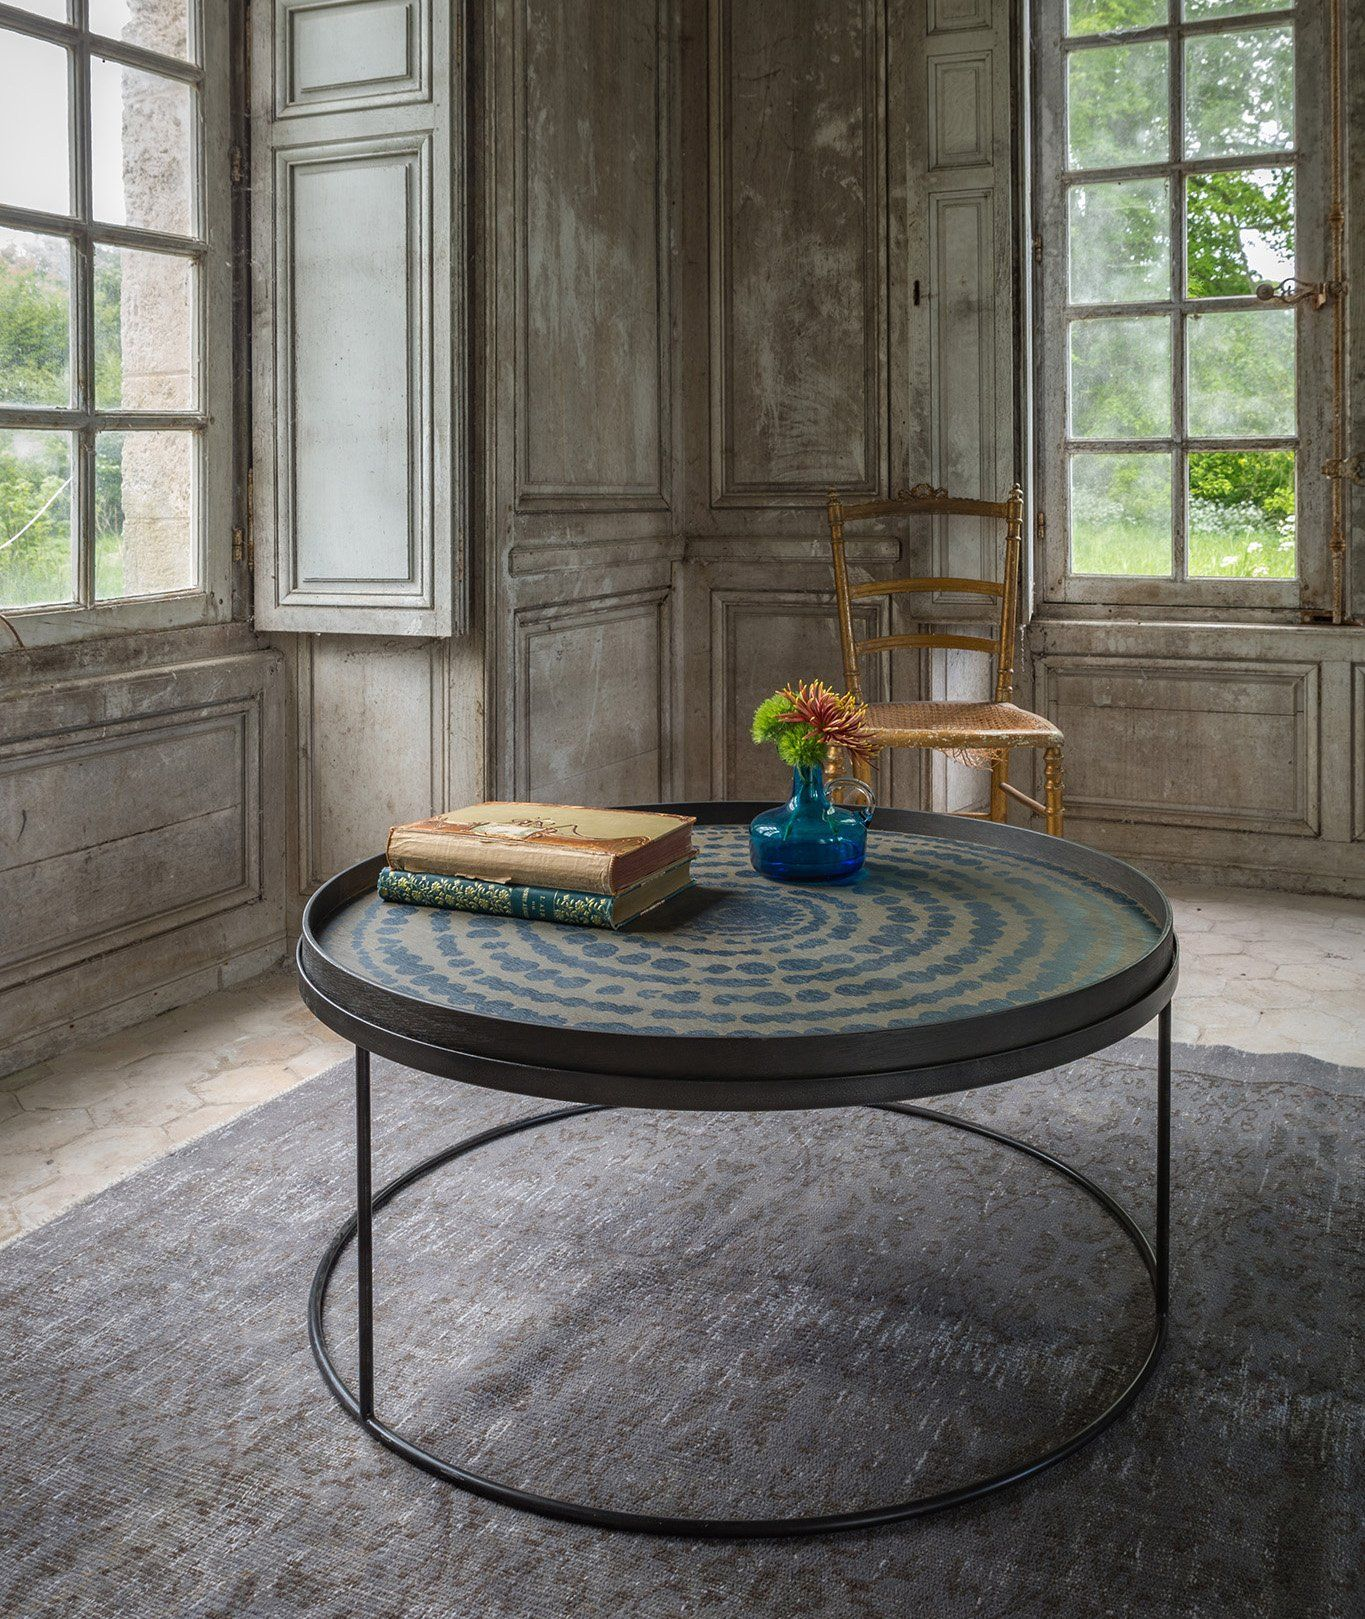 Round Tray Coffee Table Coffee Table Tray Coffee Table Round Tray [ 1619 x 1365 Pixel ]